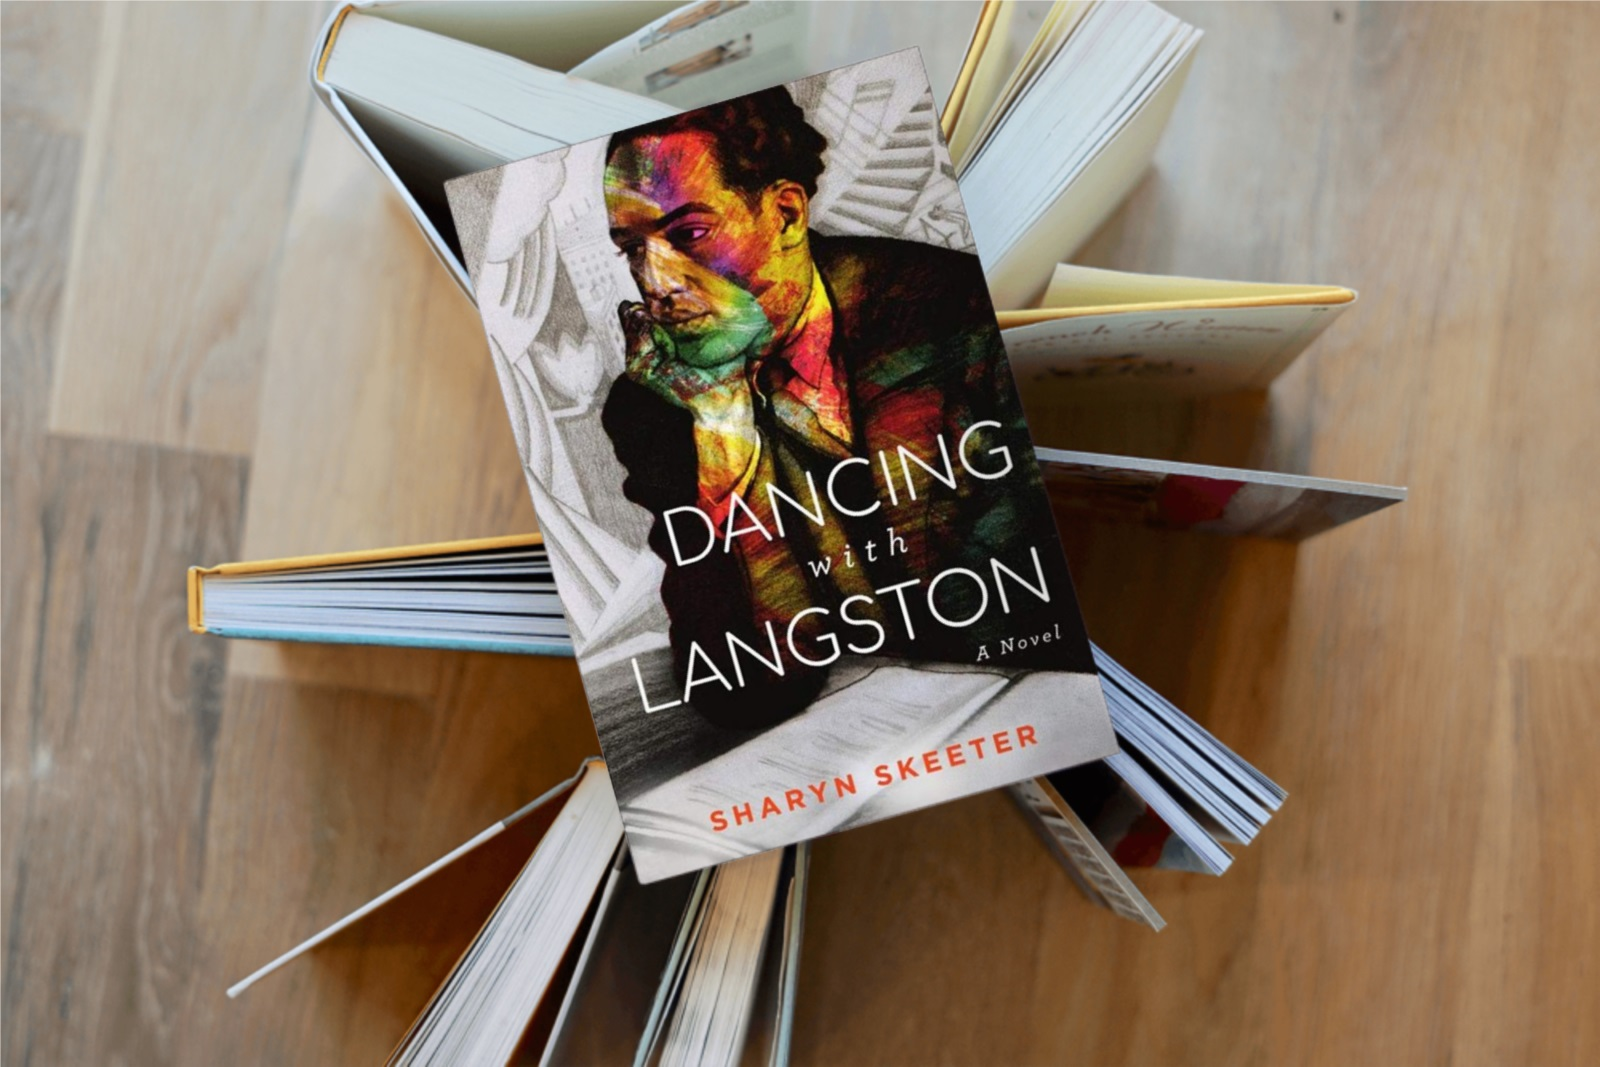 Dancing With Langston book on table